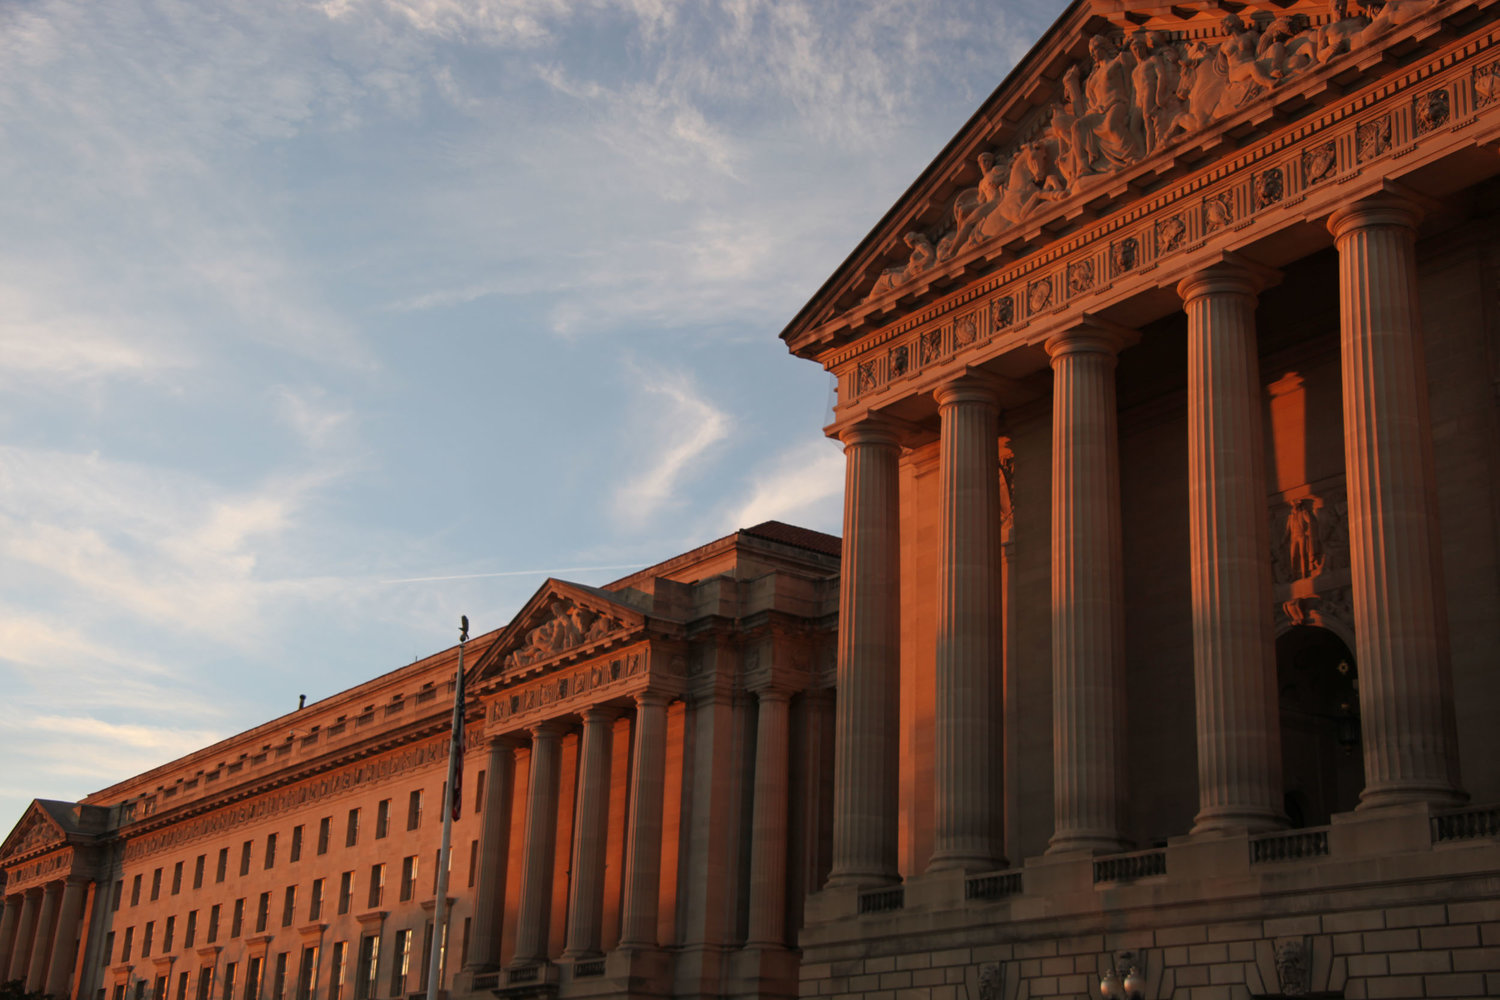 The North Building of EPA Headquarters (left) and Mellon Auditorium (right) at sunset in Washington, D.C. Photo: Tim Evanson / flickr